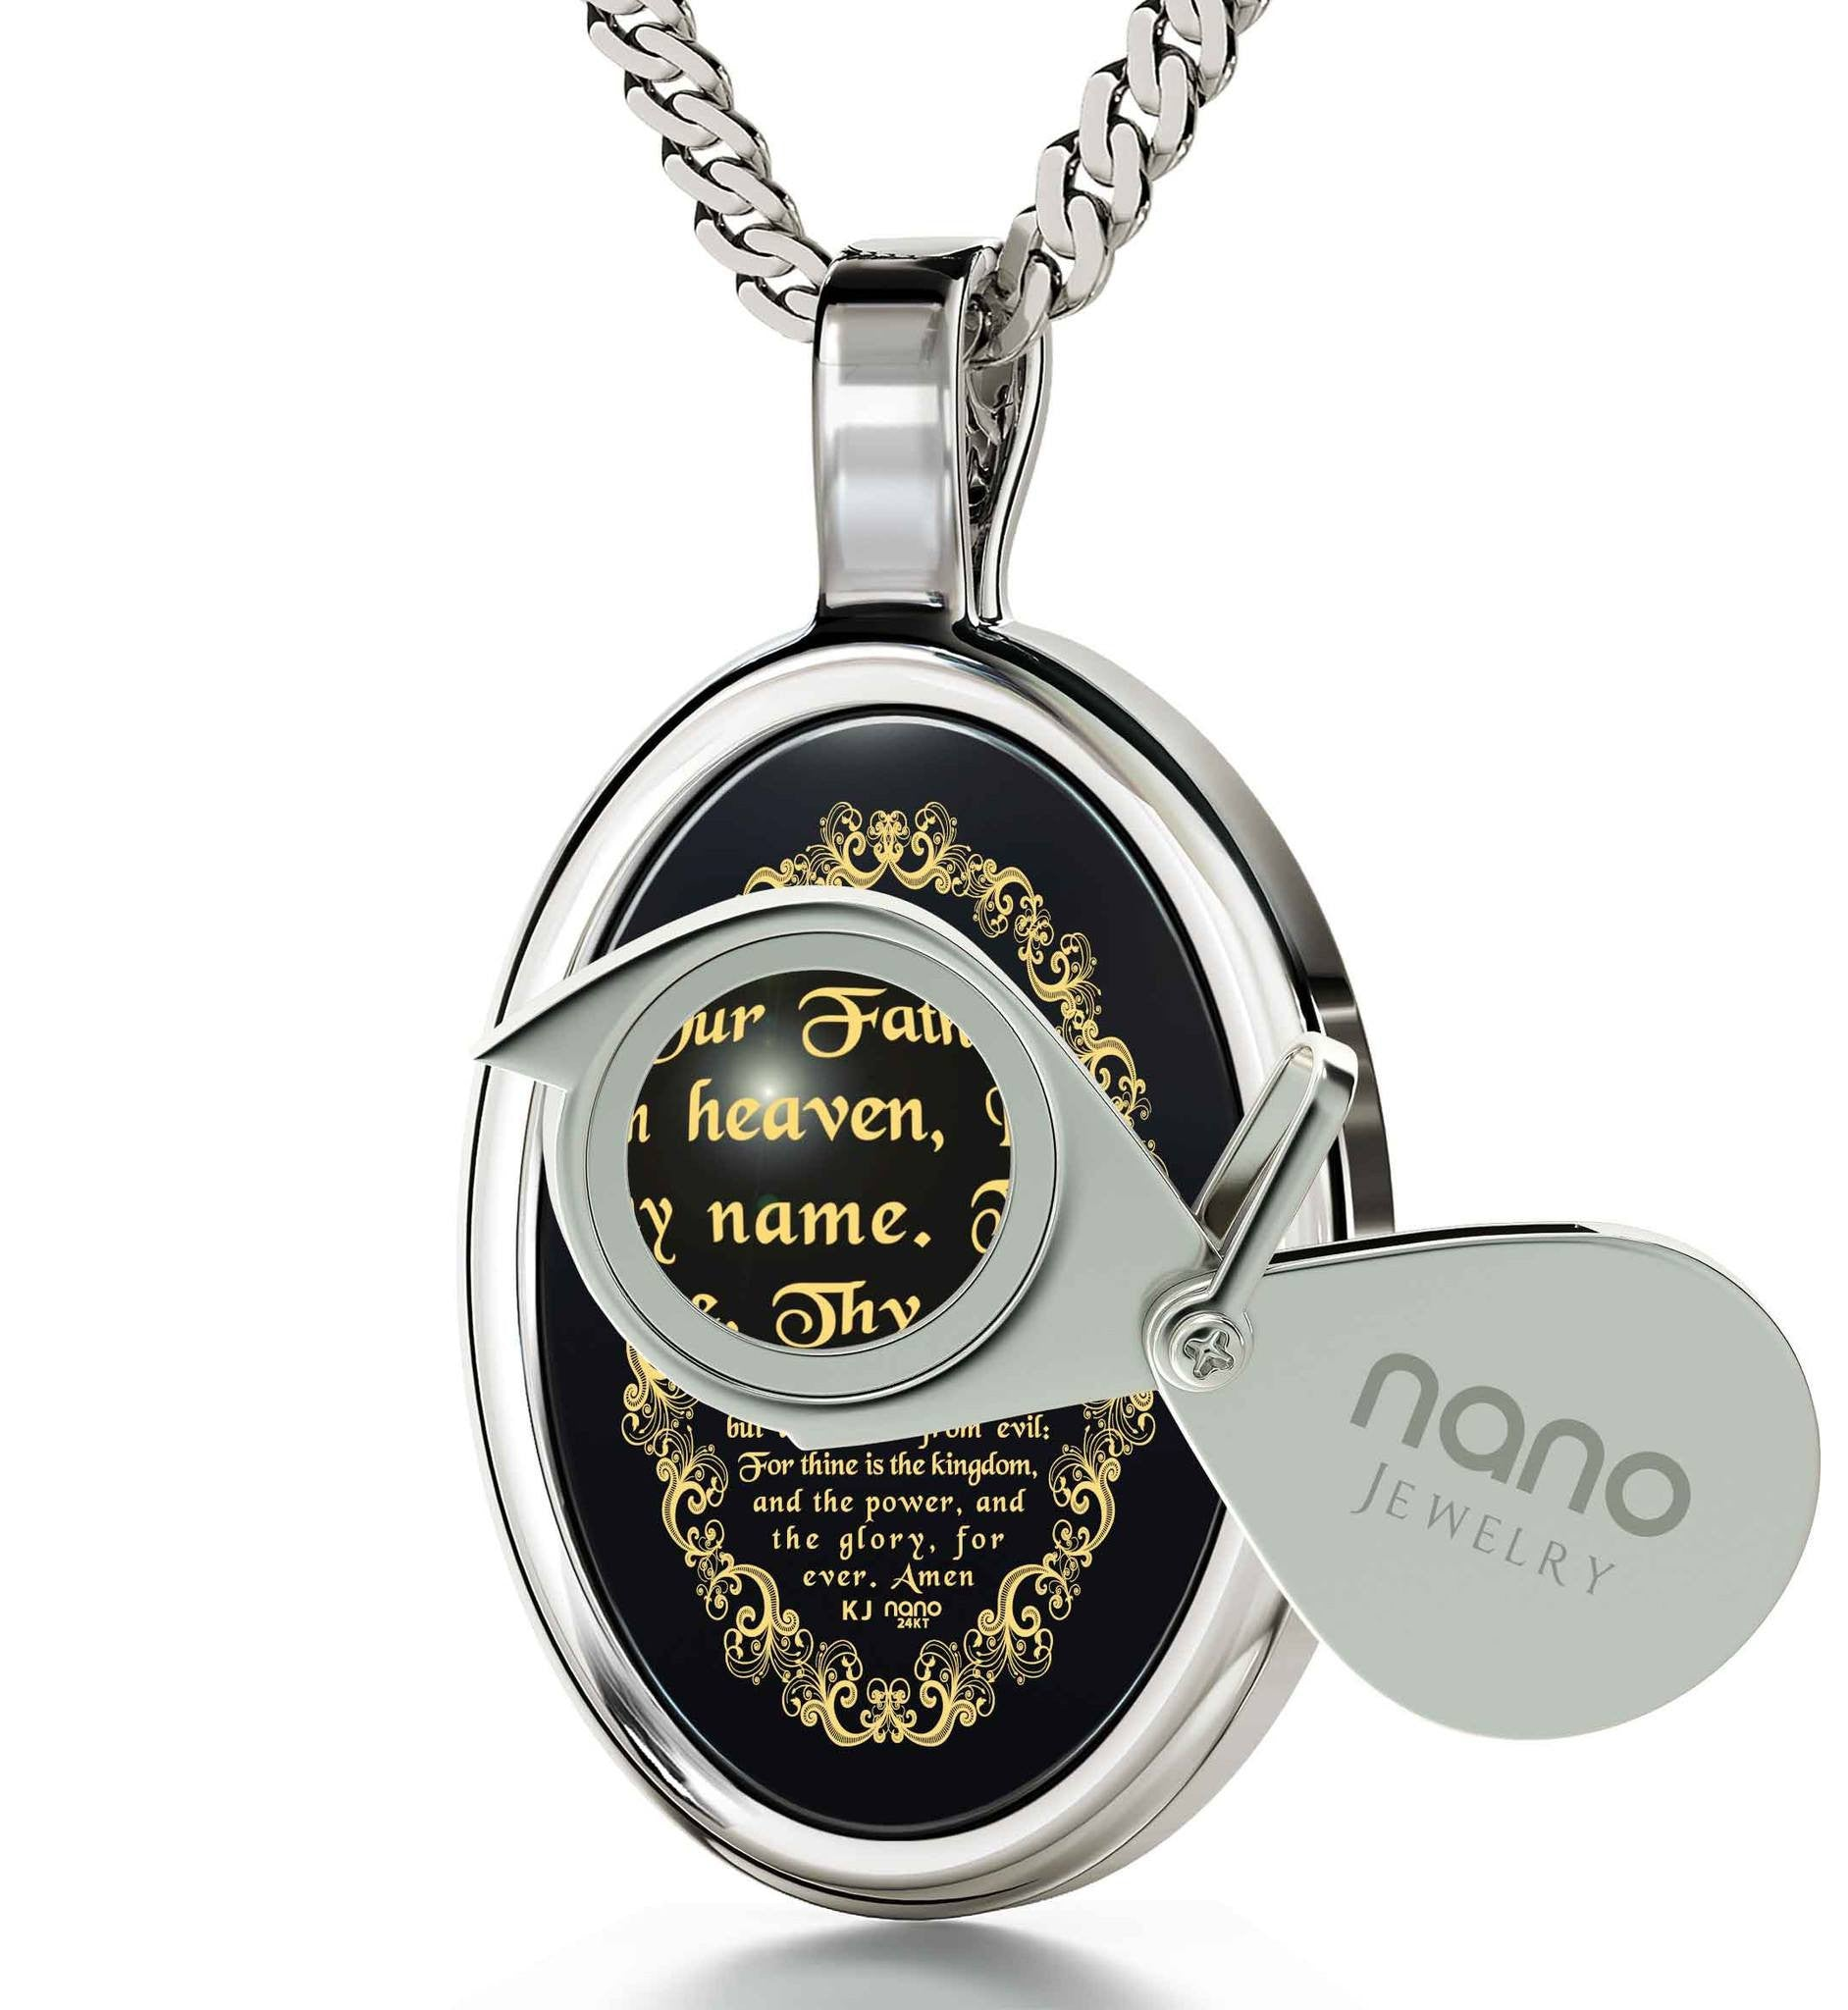 """Our Father: Prayer Engraved in 24k, Mens Christmas Ideas, Cool Gifts for Teen Boys, Nano Jewelry"""